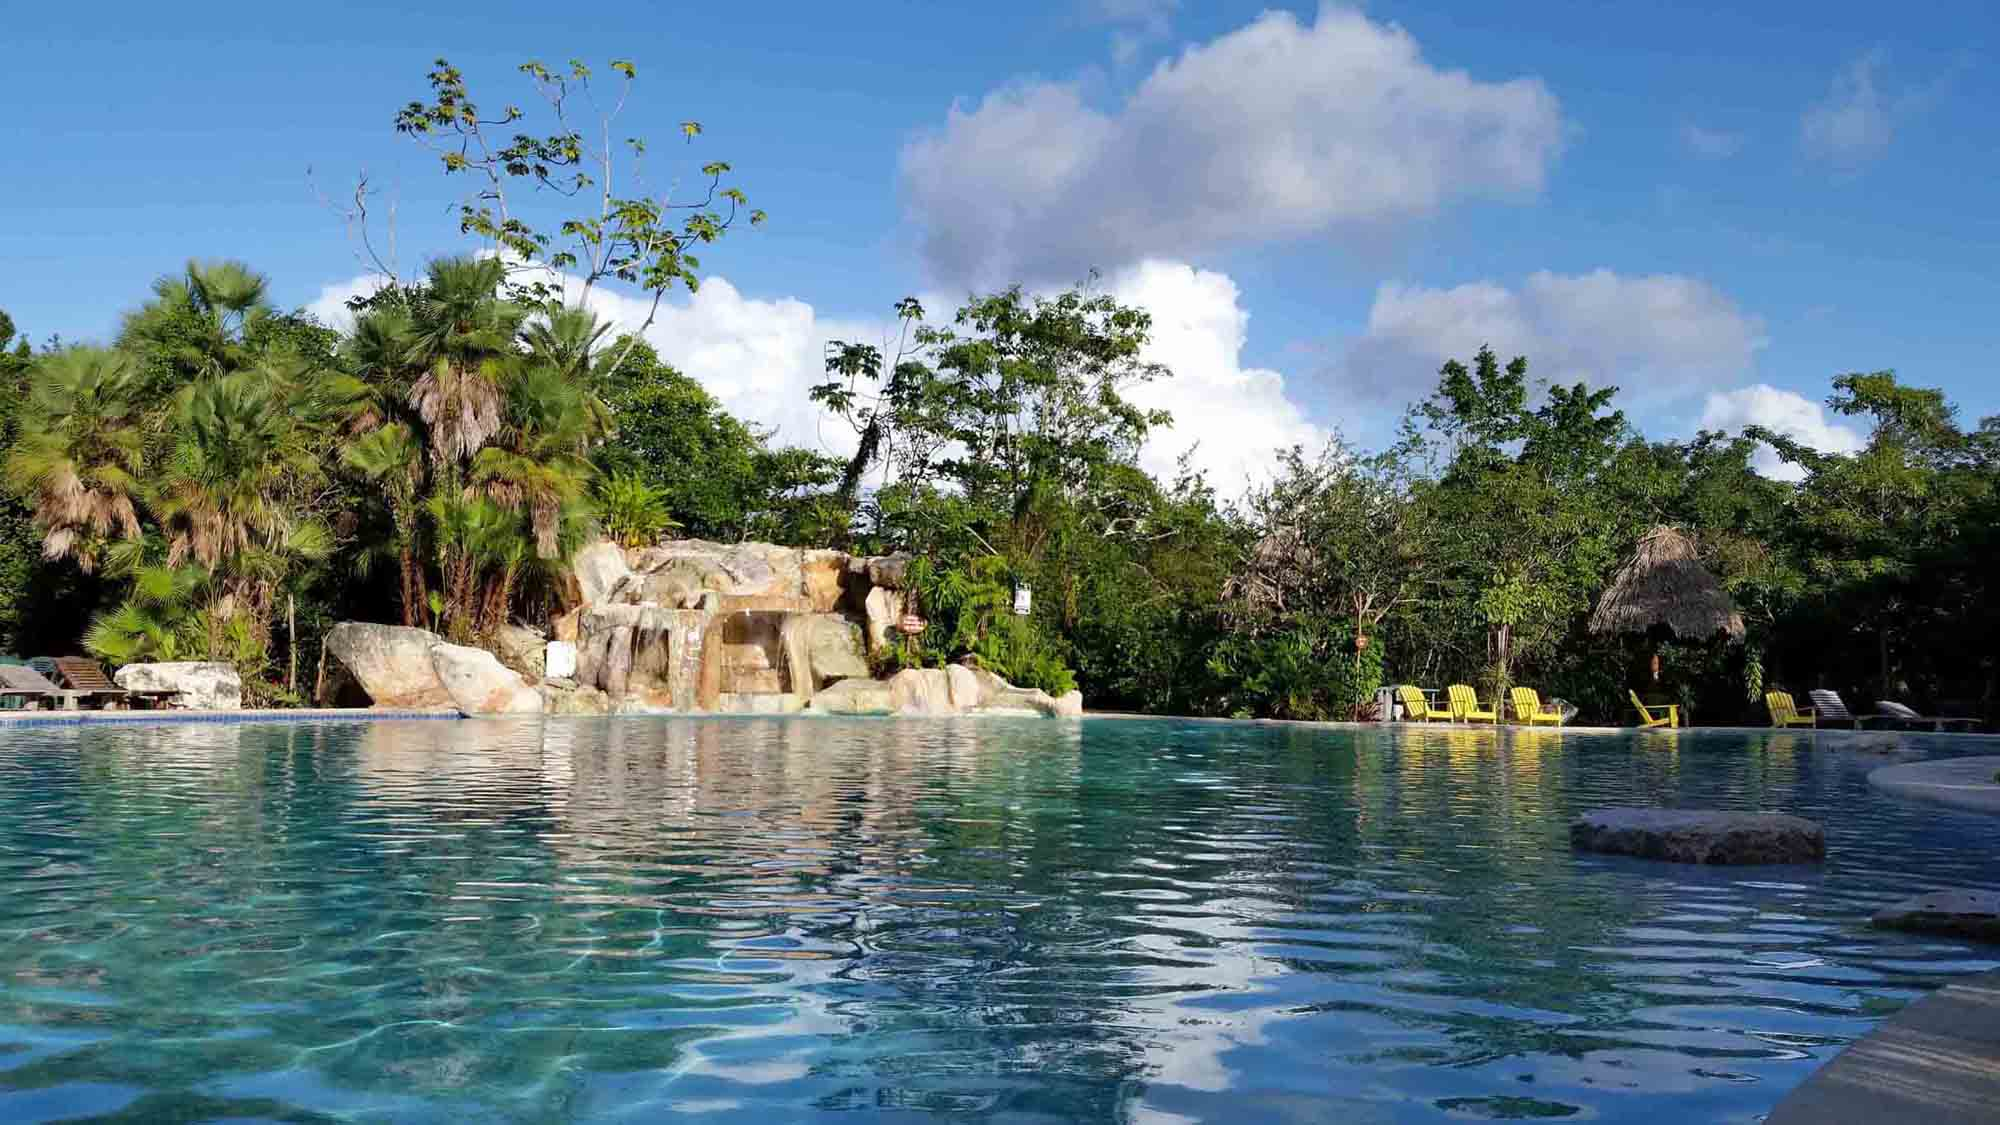 Bacab Ecopark Belize City, Bacab Eco Park - An Oasis of Adventure Tours, Fun and Relaxation